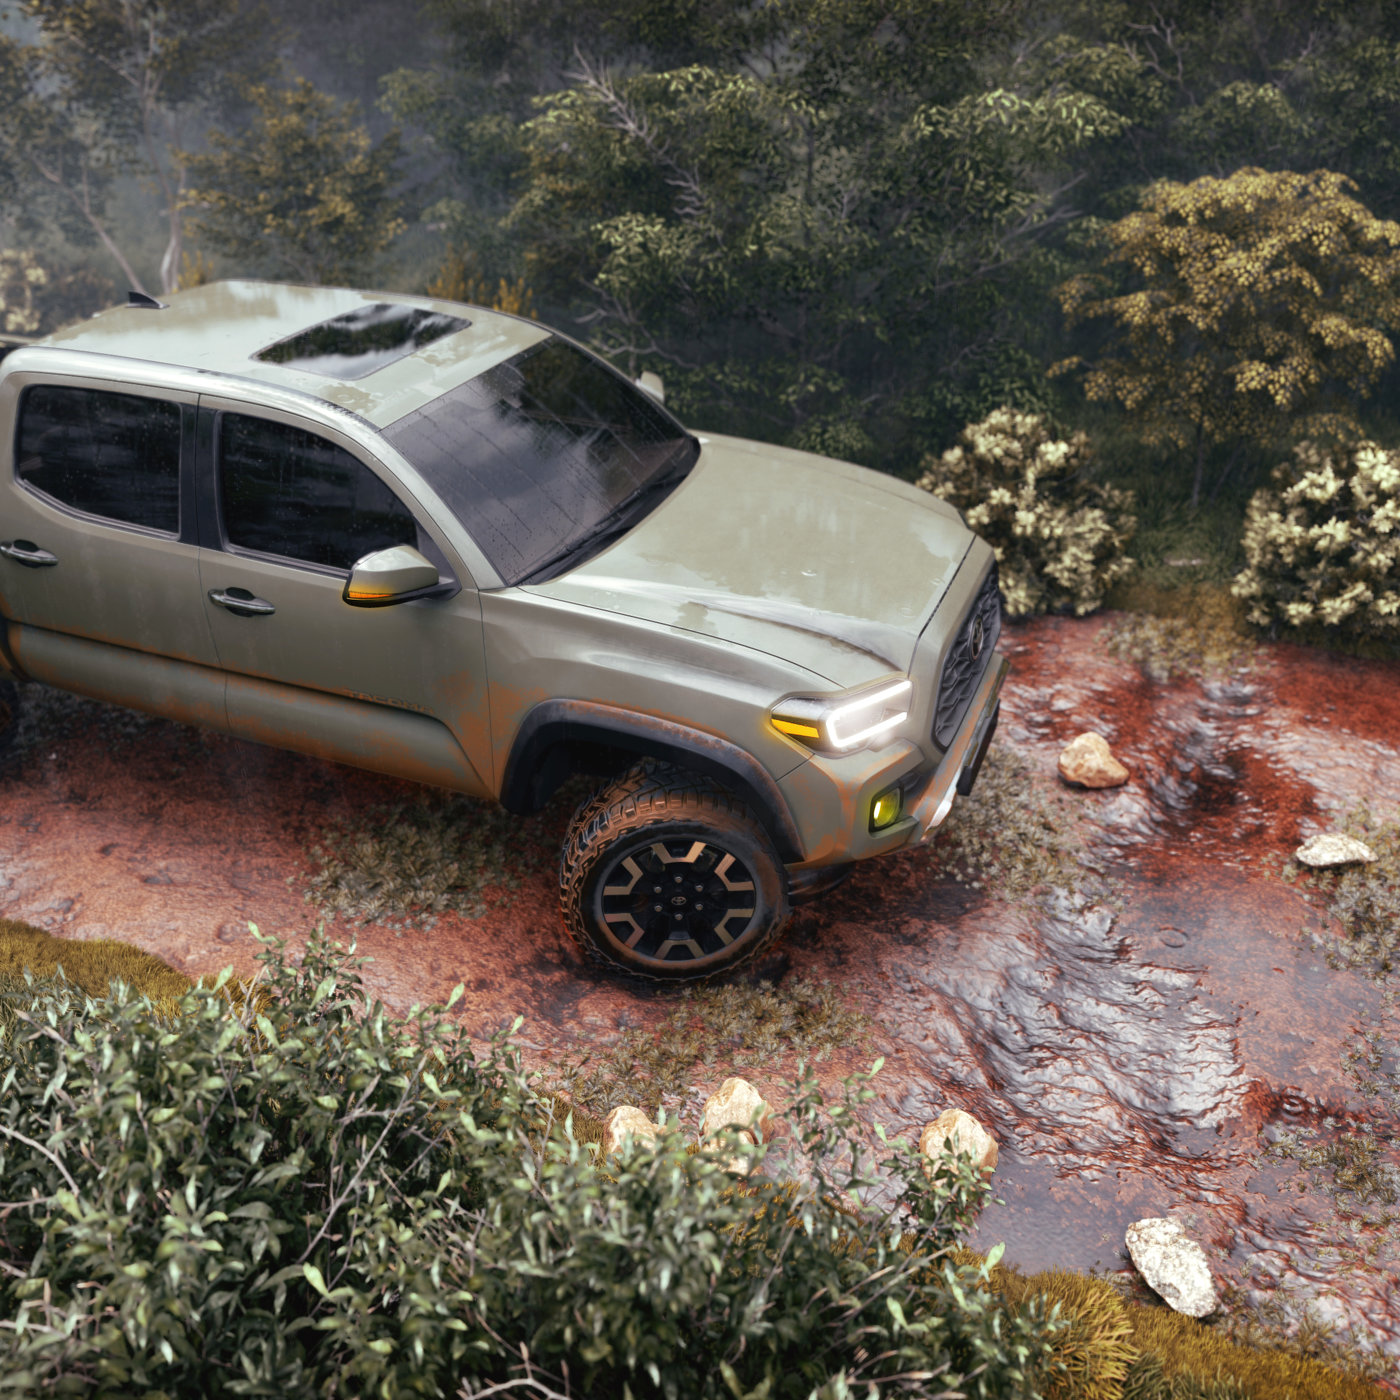 Tacoma In The Wild